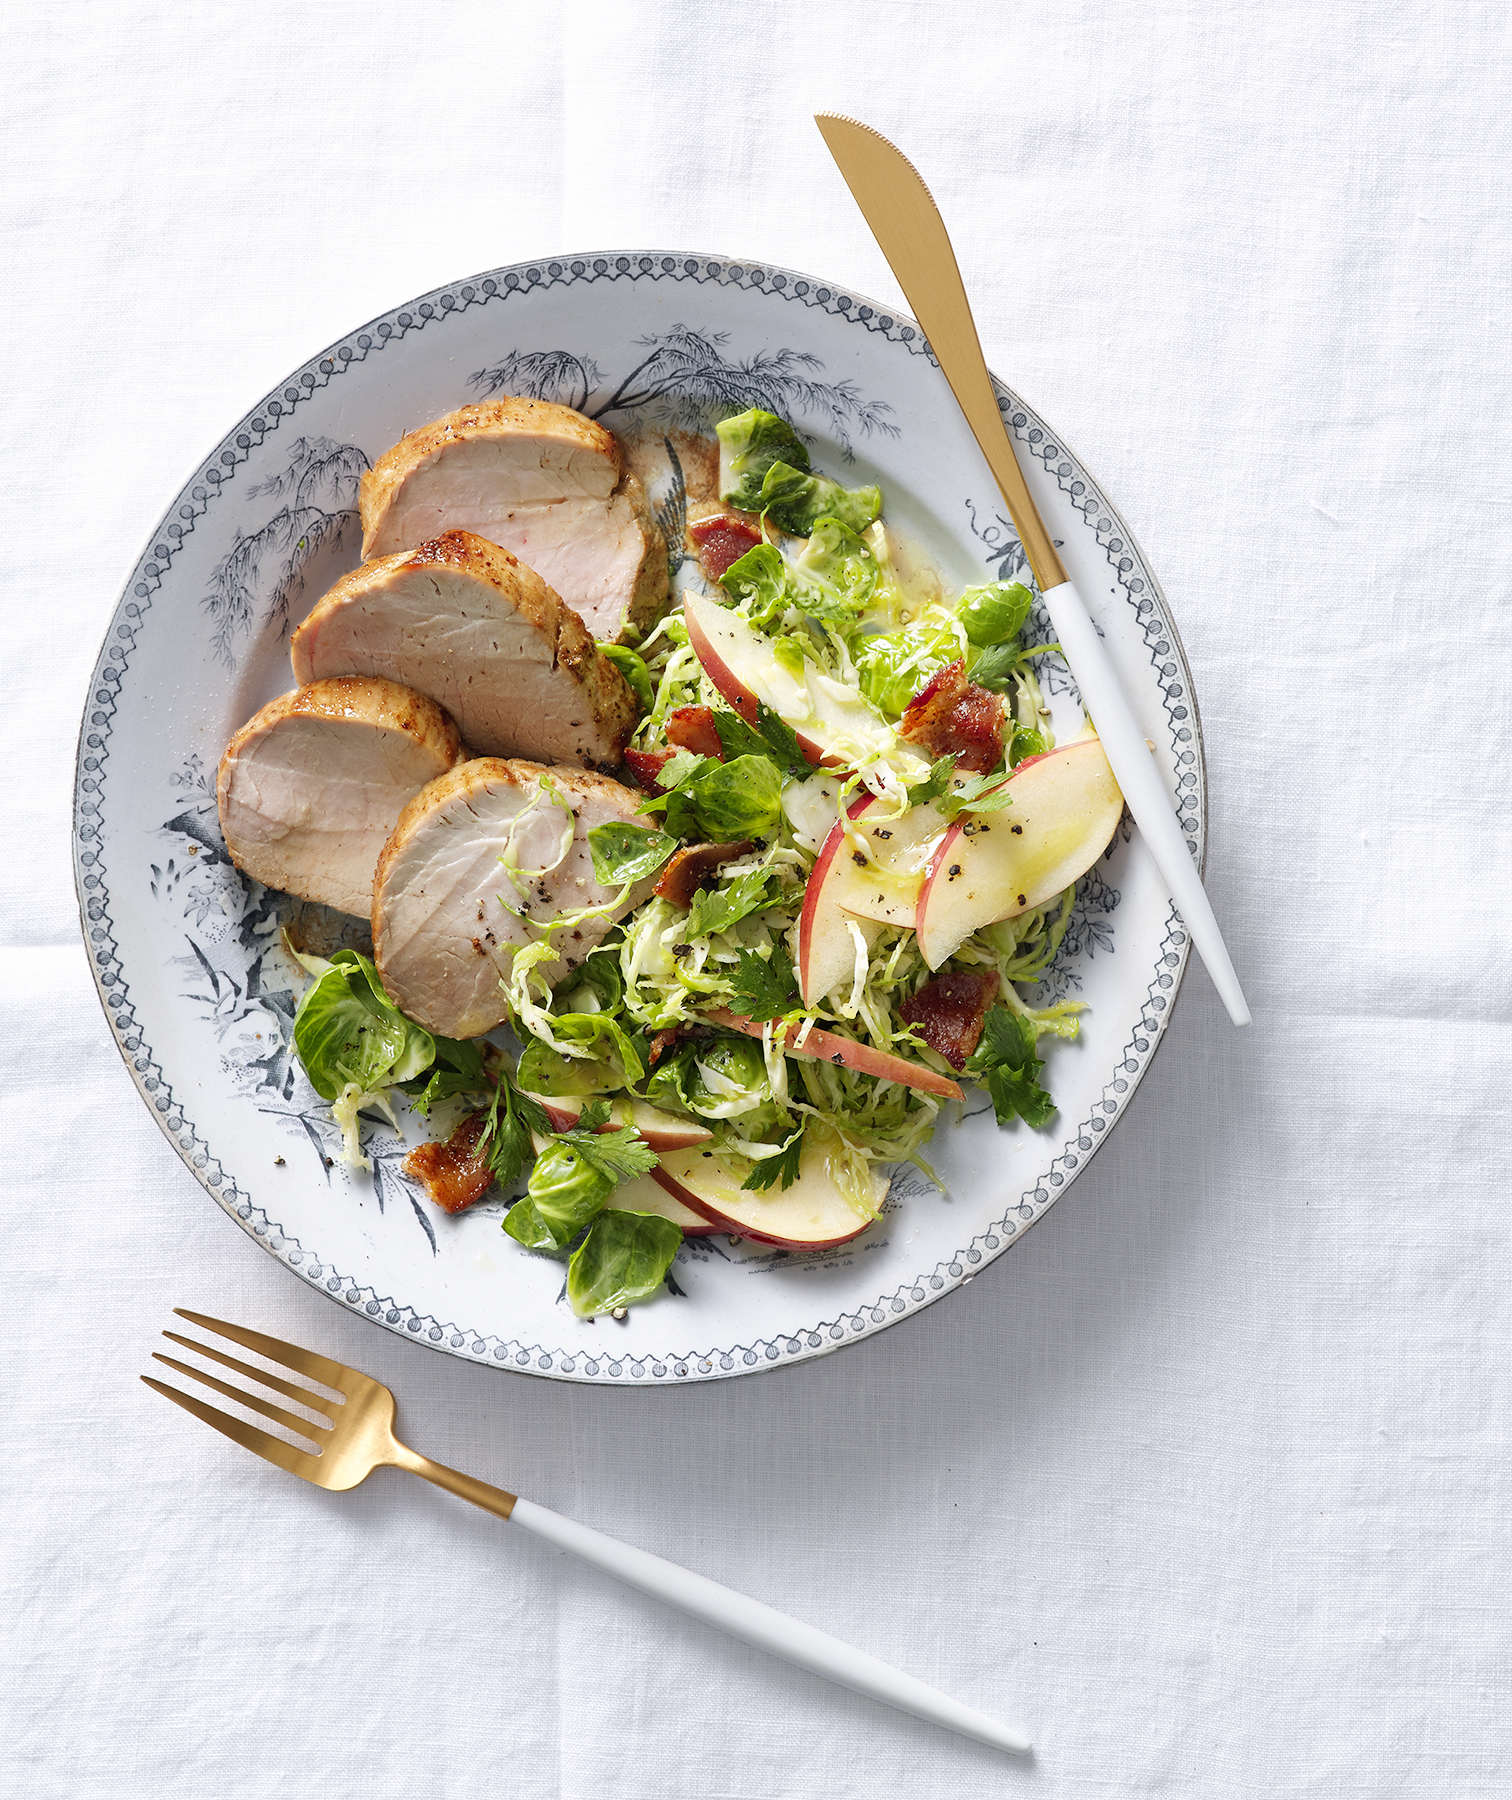 pork-tenderloin-brussel-sprouts-salad